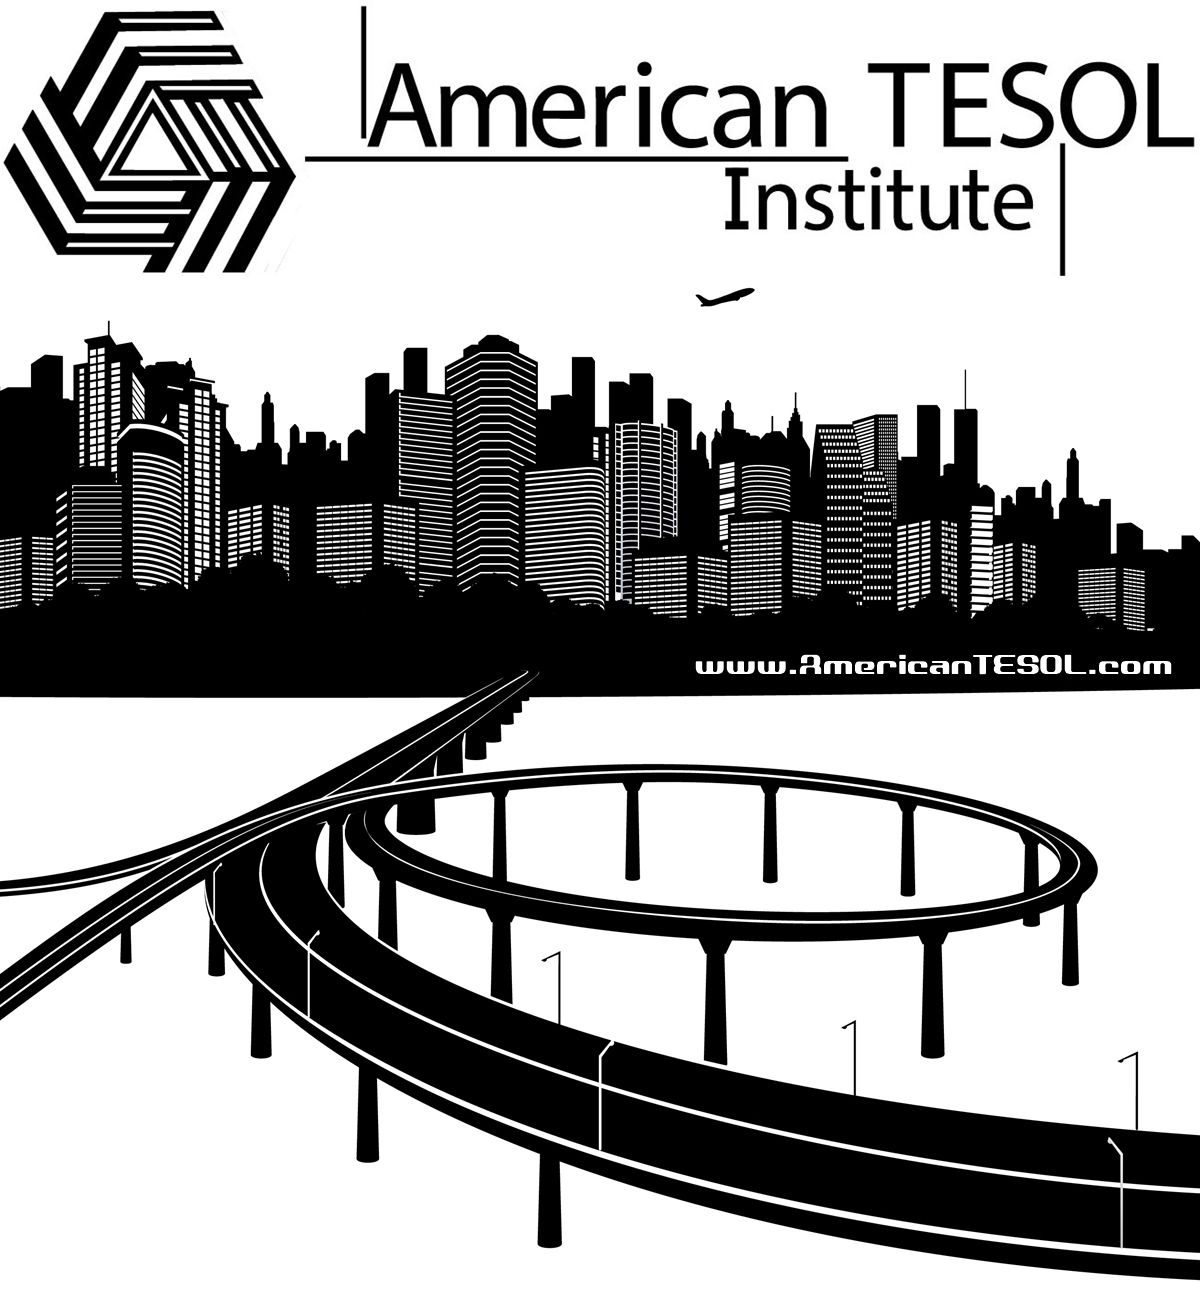 American tesol institute 120 hour on site international american tesol institute 120 hour on site international certification programs provide a smooth transition to xflitez Image collections